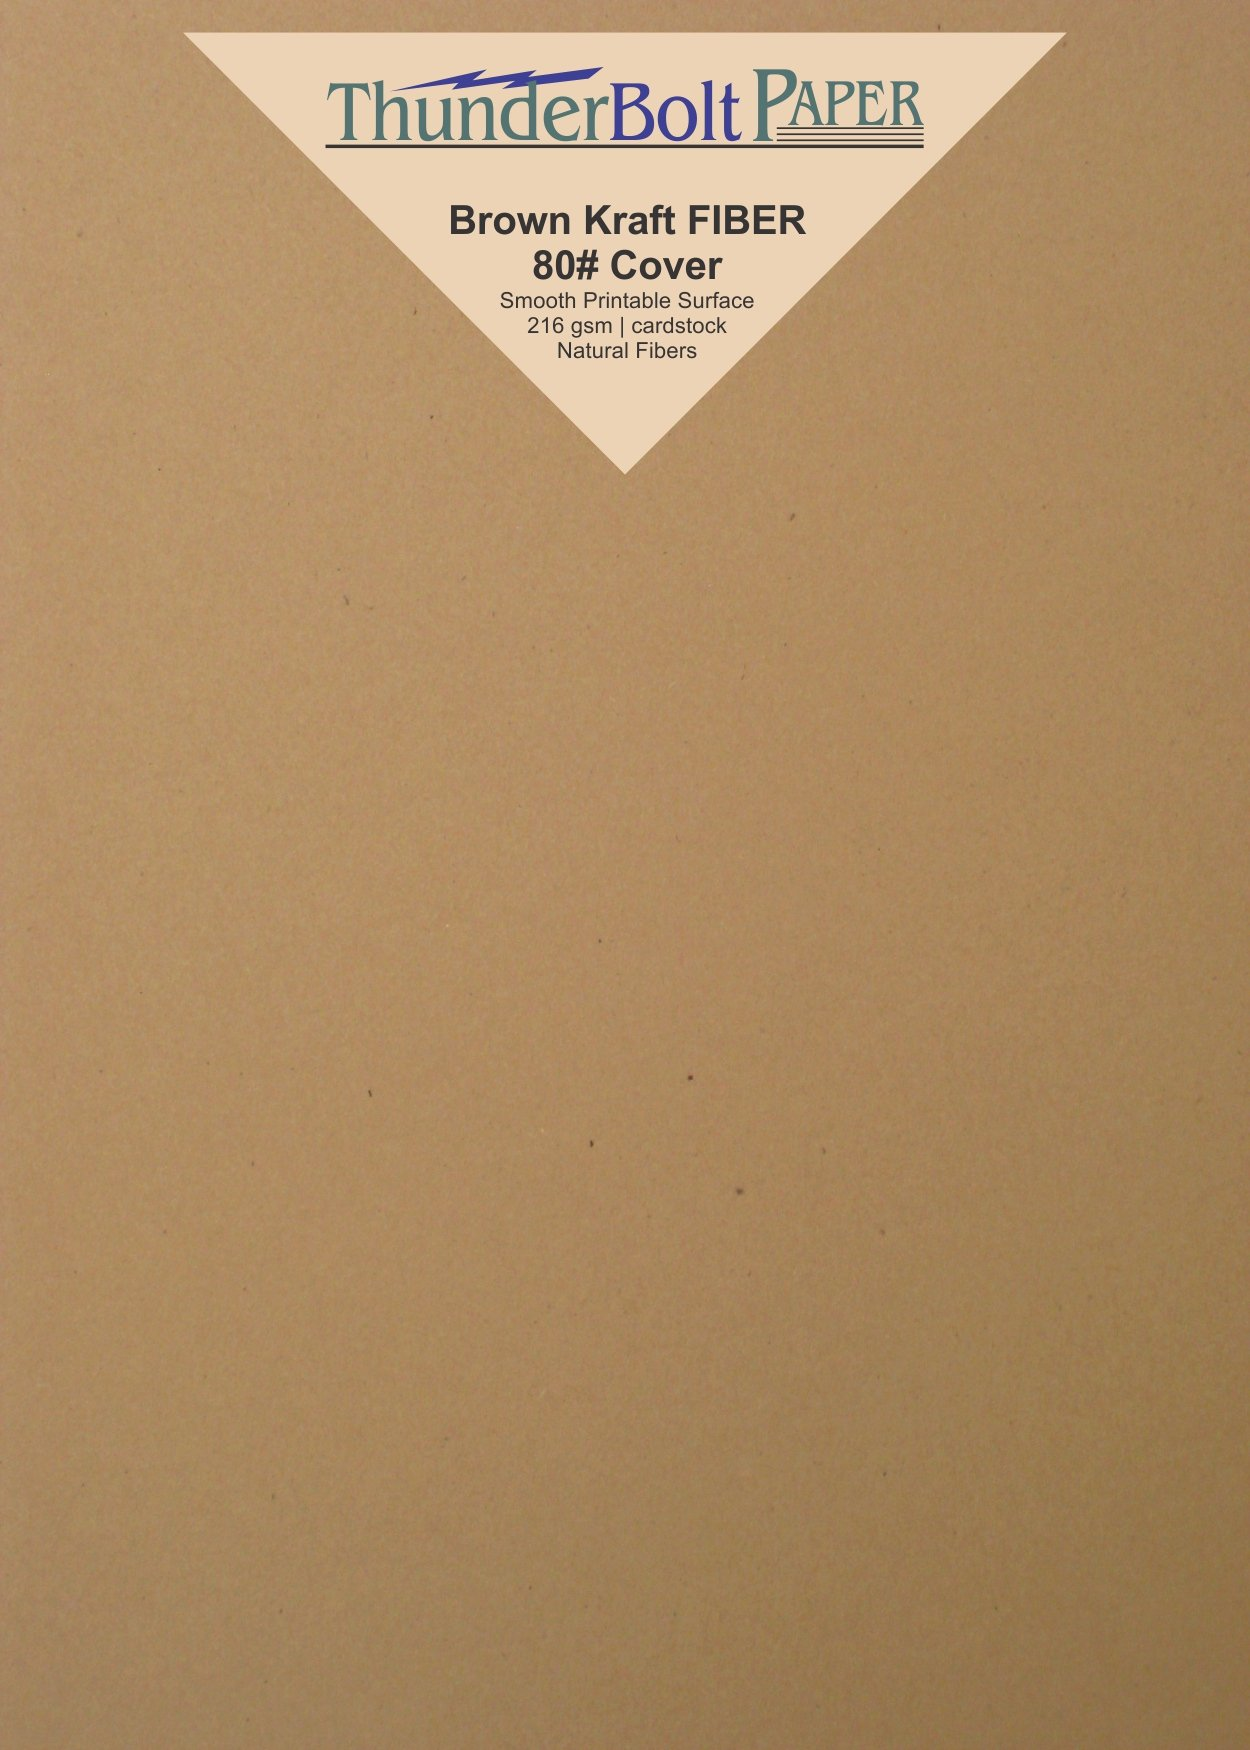 50 Brown Kraft Fiber 80# Cover Paper Sheets - 5'' X 7'' (5X7 Inches) Photo Card Frame Size - Rich Earthy Color with Natural Fibers - 80lb/pound Cardstock - Smooth Finish